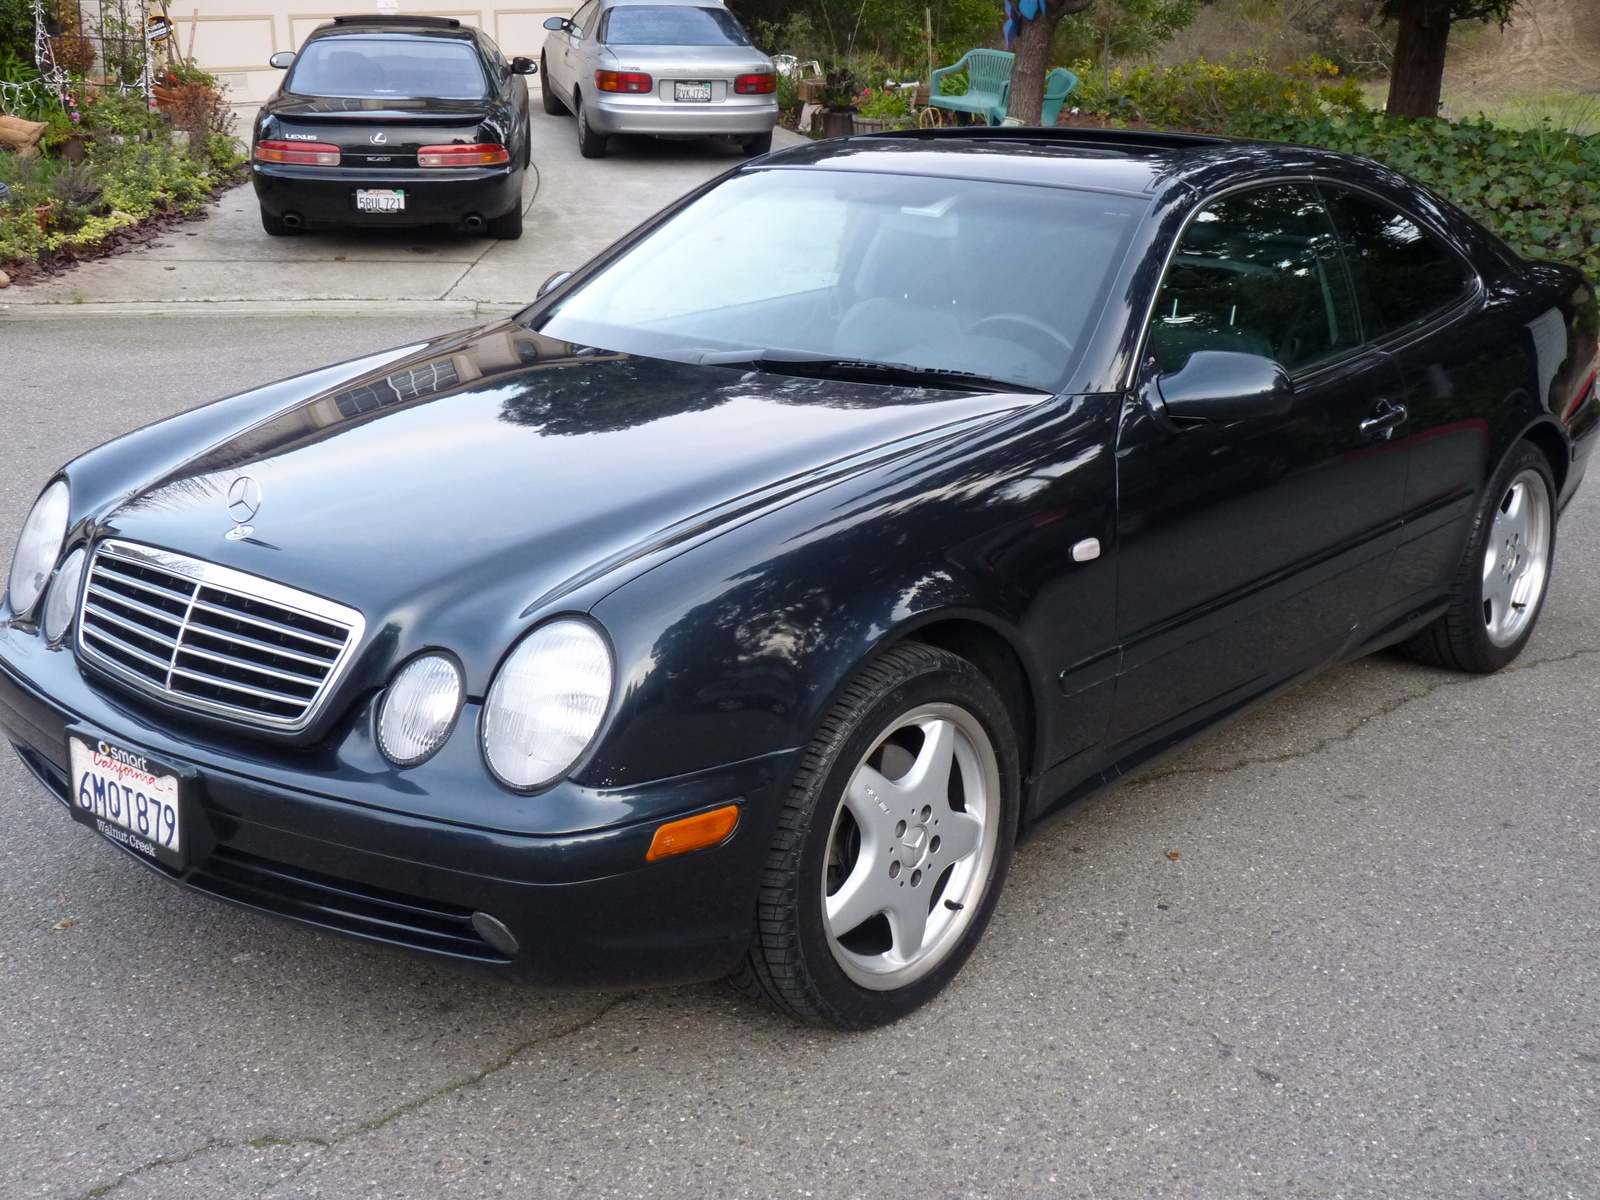 1999 mercedes benz clk class exterior pictures cargurus for 1999 mercedes benz clk 430